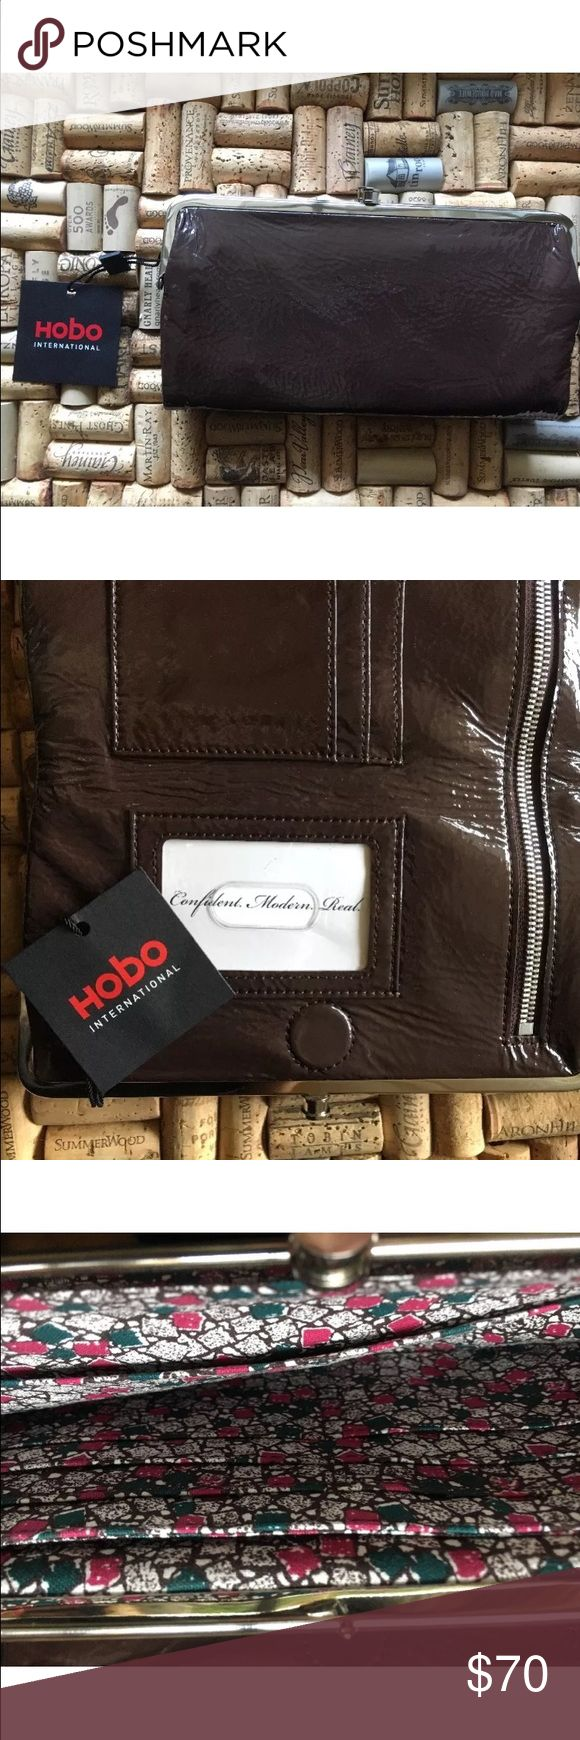 HOBO International Leather Double frame clutch Patent, soft leather. Double frame clutch NWT HOBO Bags Clutches & Wristlets